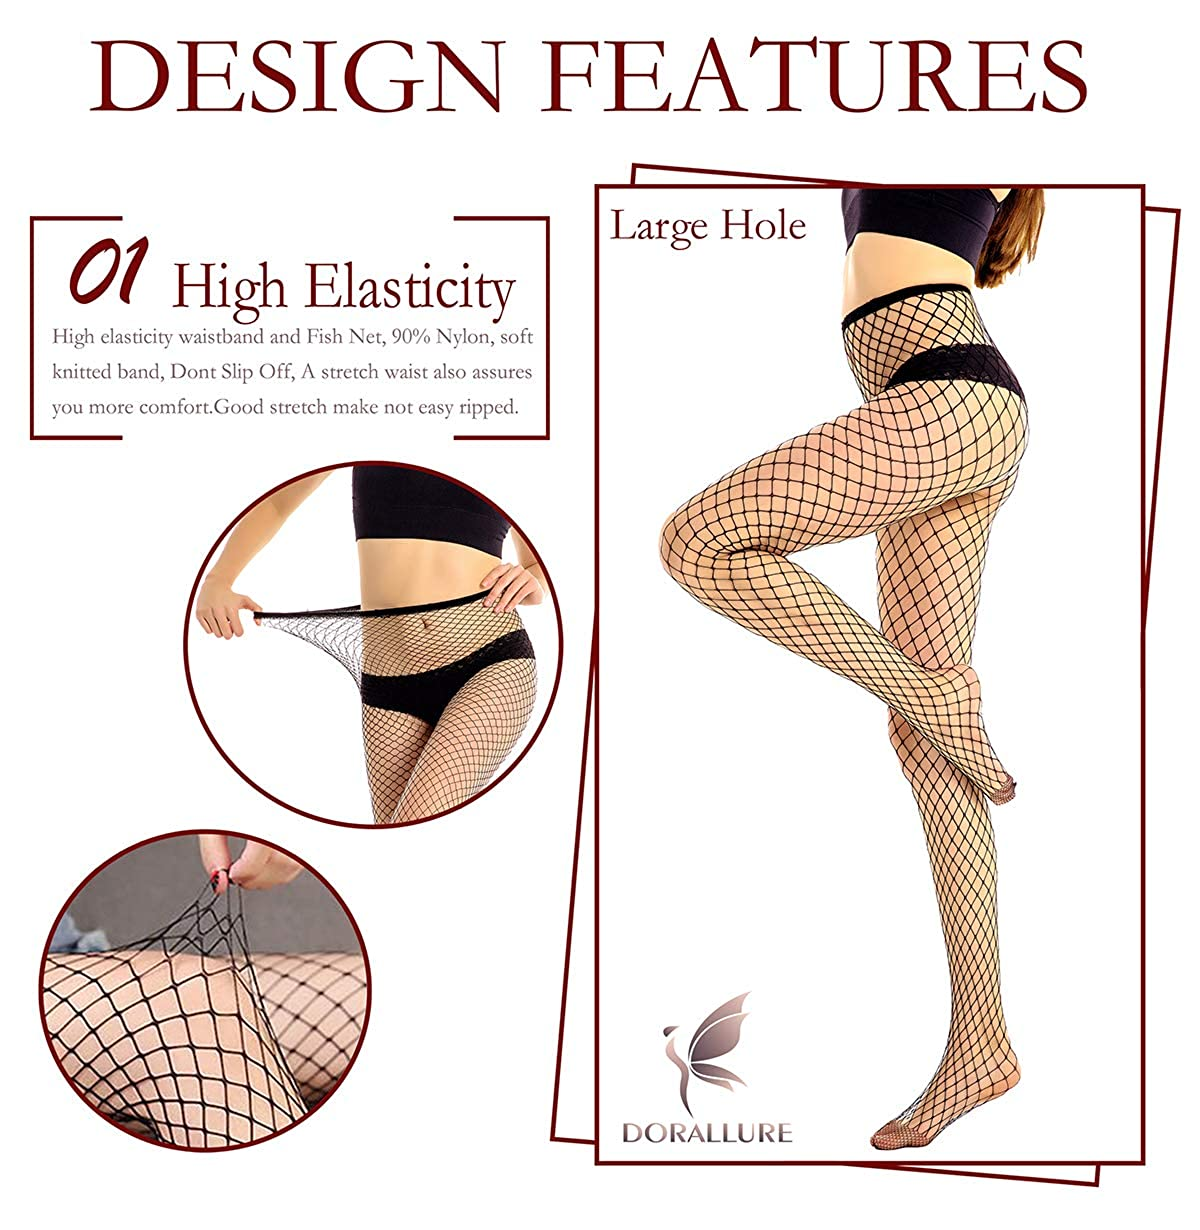 d7a4ced7e21b61 Clothing Womens Fishnet Tights 2 Pair Waist High Stockings Basic/Rhinestone  Fishnets Socks Seamless Pantyhose DORALLURE 2SNW002-Black-R Small Hole Women